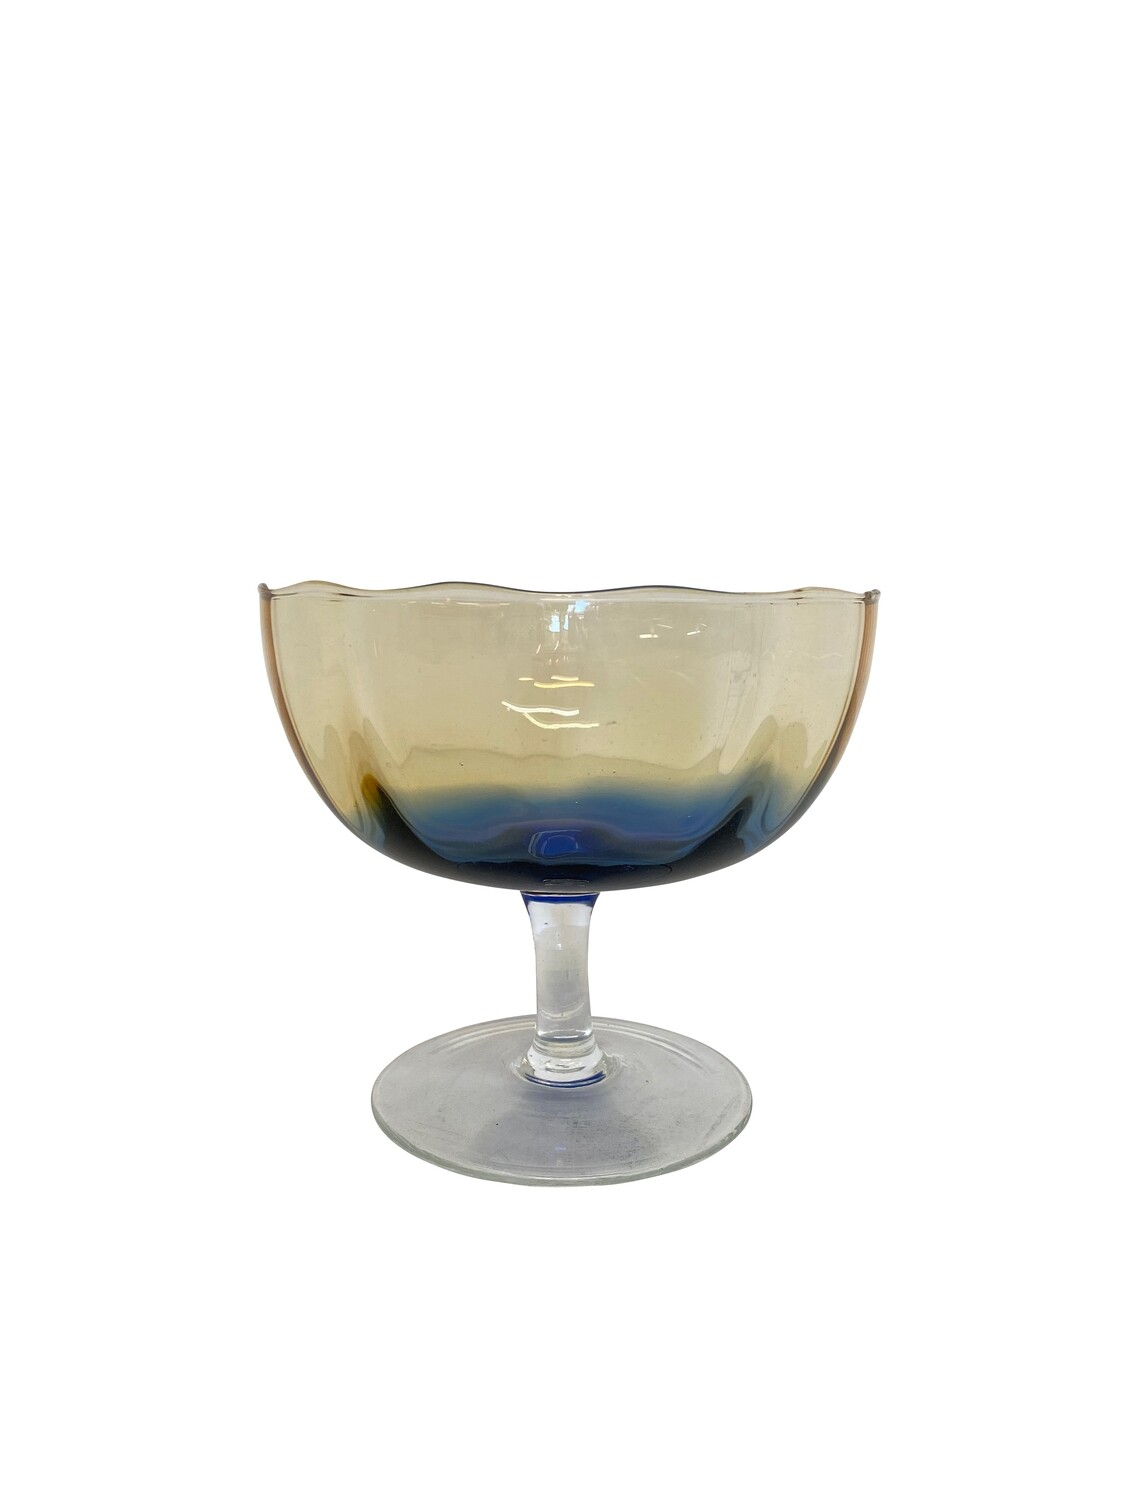 Mid Century Glass Footed Bowl in Hombre Hues of Blues and Ambers